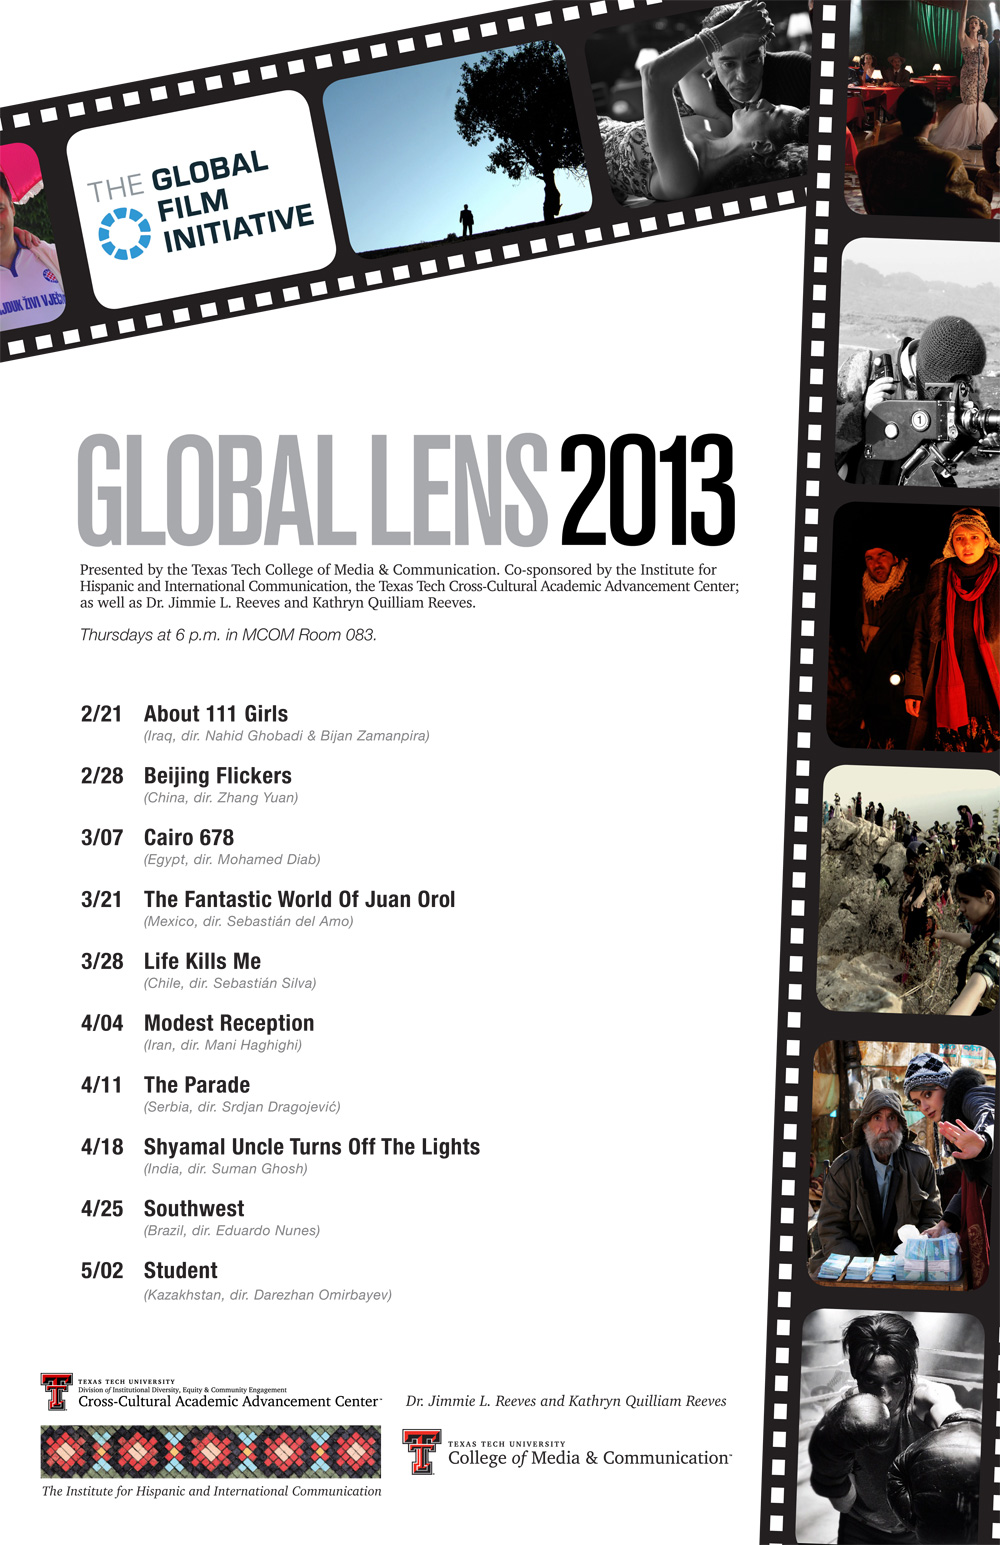 Global Lens In An Annual Touring Film Series Launched 2003 By The